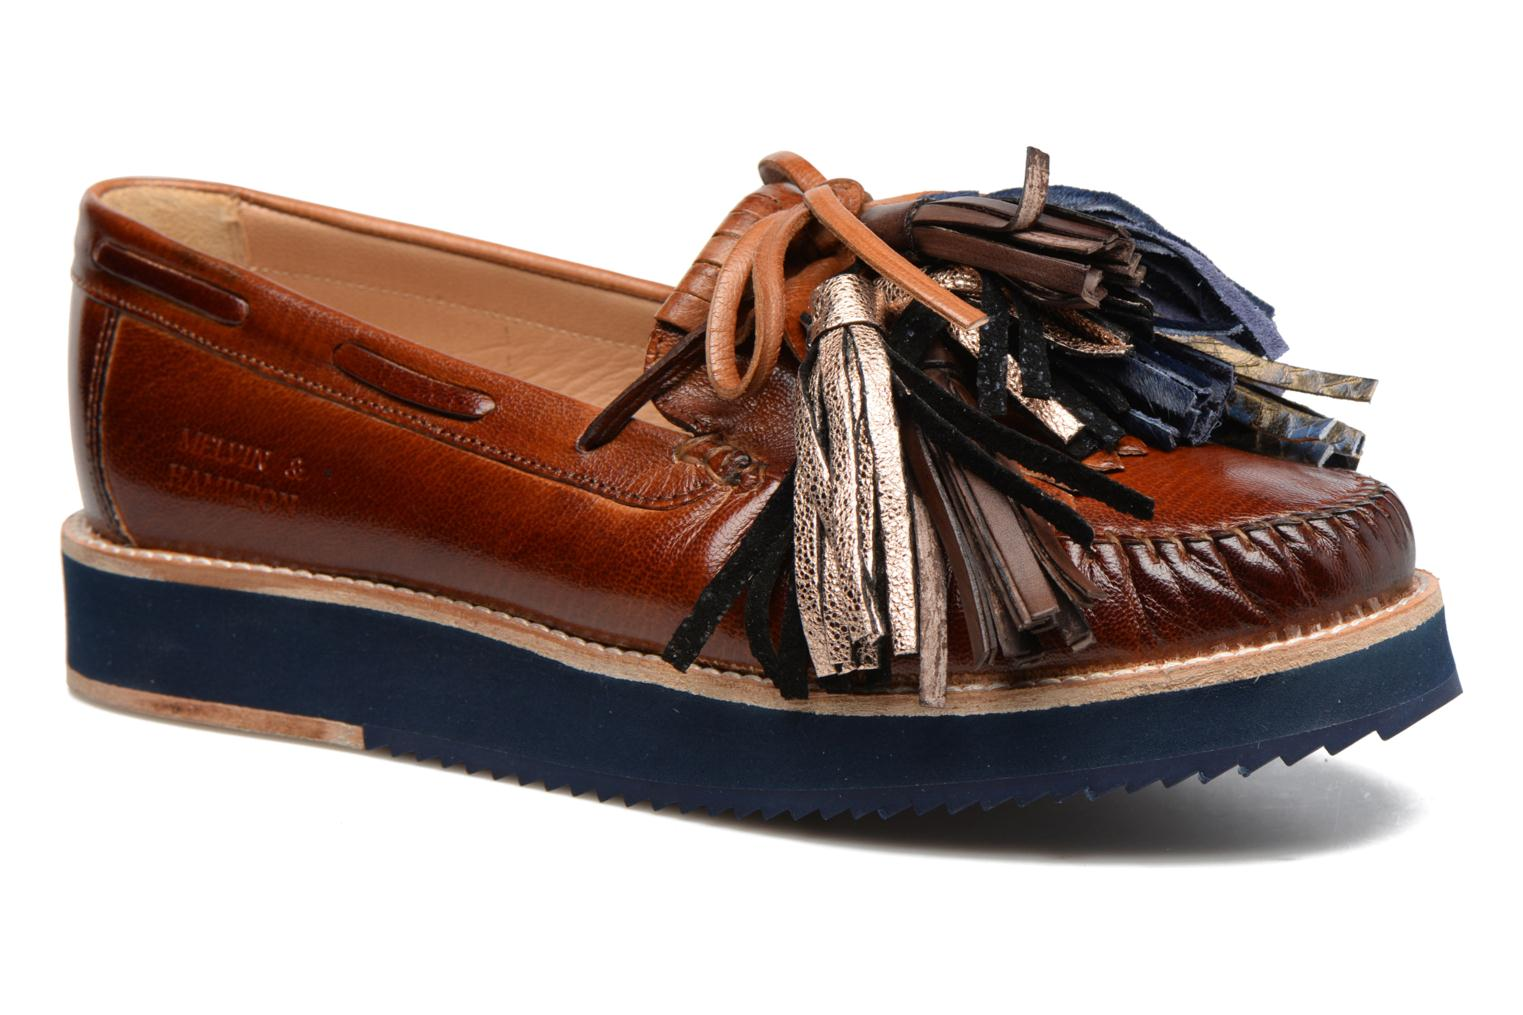 Bea 4 Crust tan tassel multi z navy navy